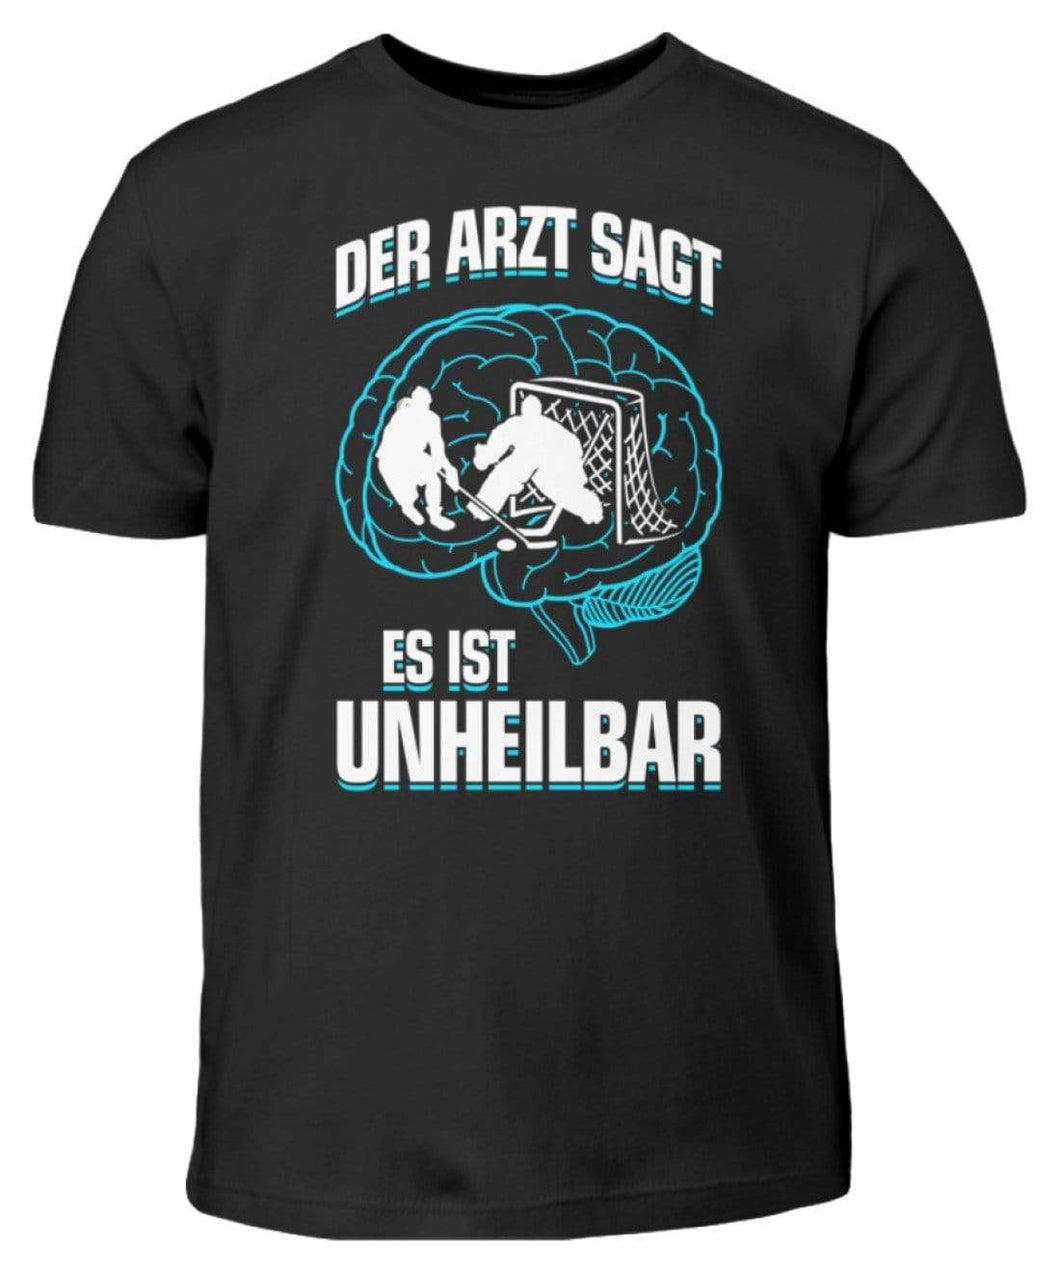 Kinder T-Shirt Black / 3/4 (98/104) Eishockey: ...es ist unheilbar  - Kinder T-Shirt (4330471227444)